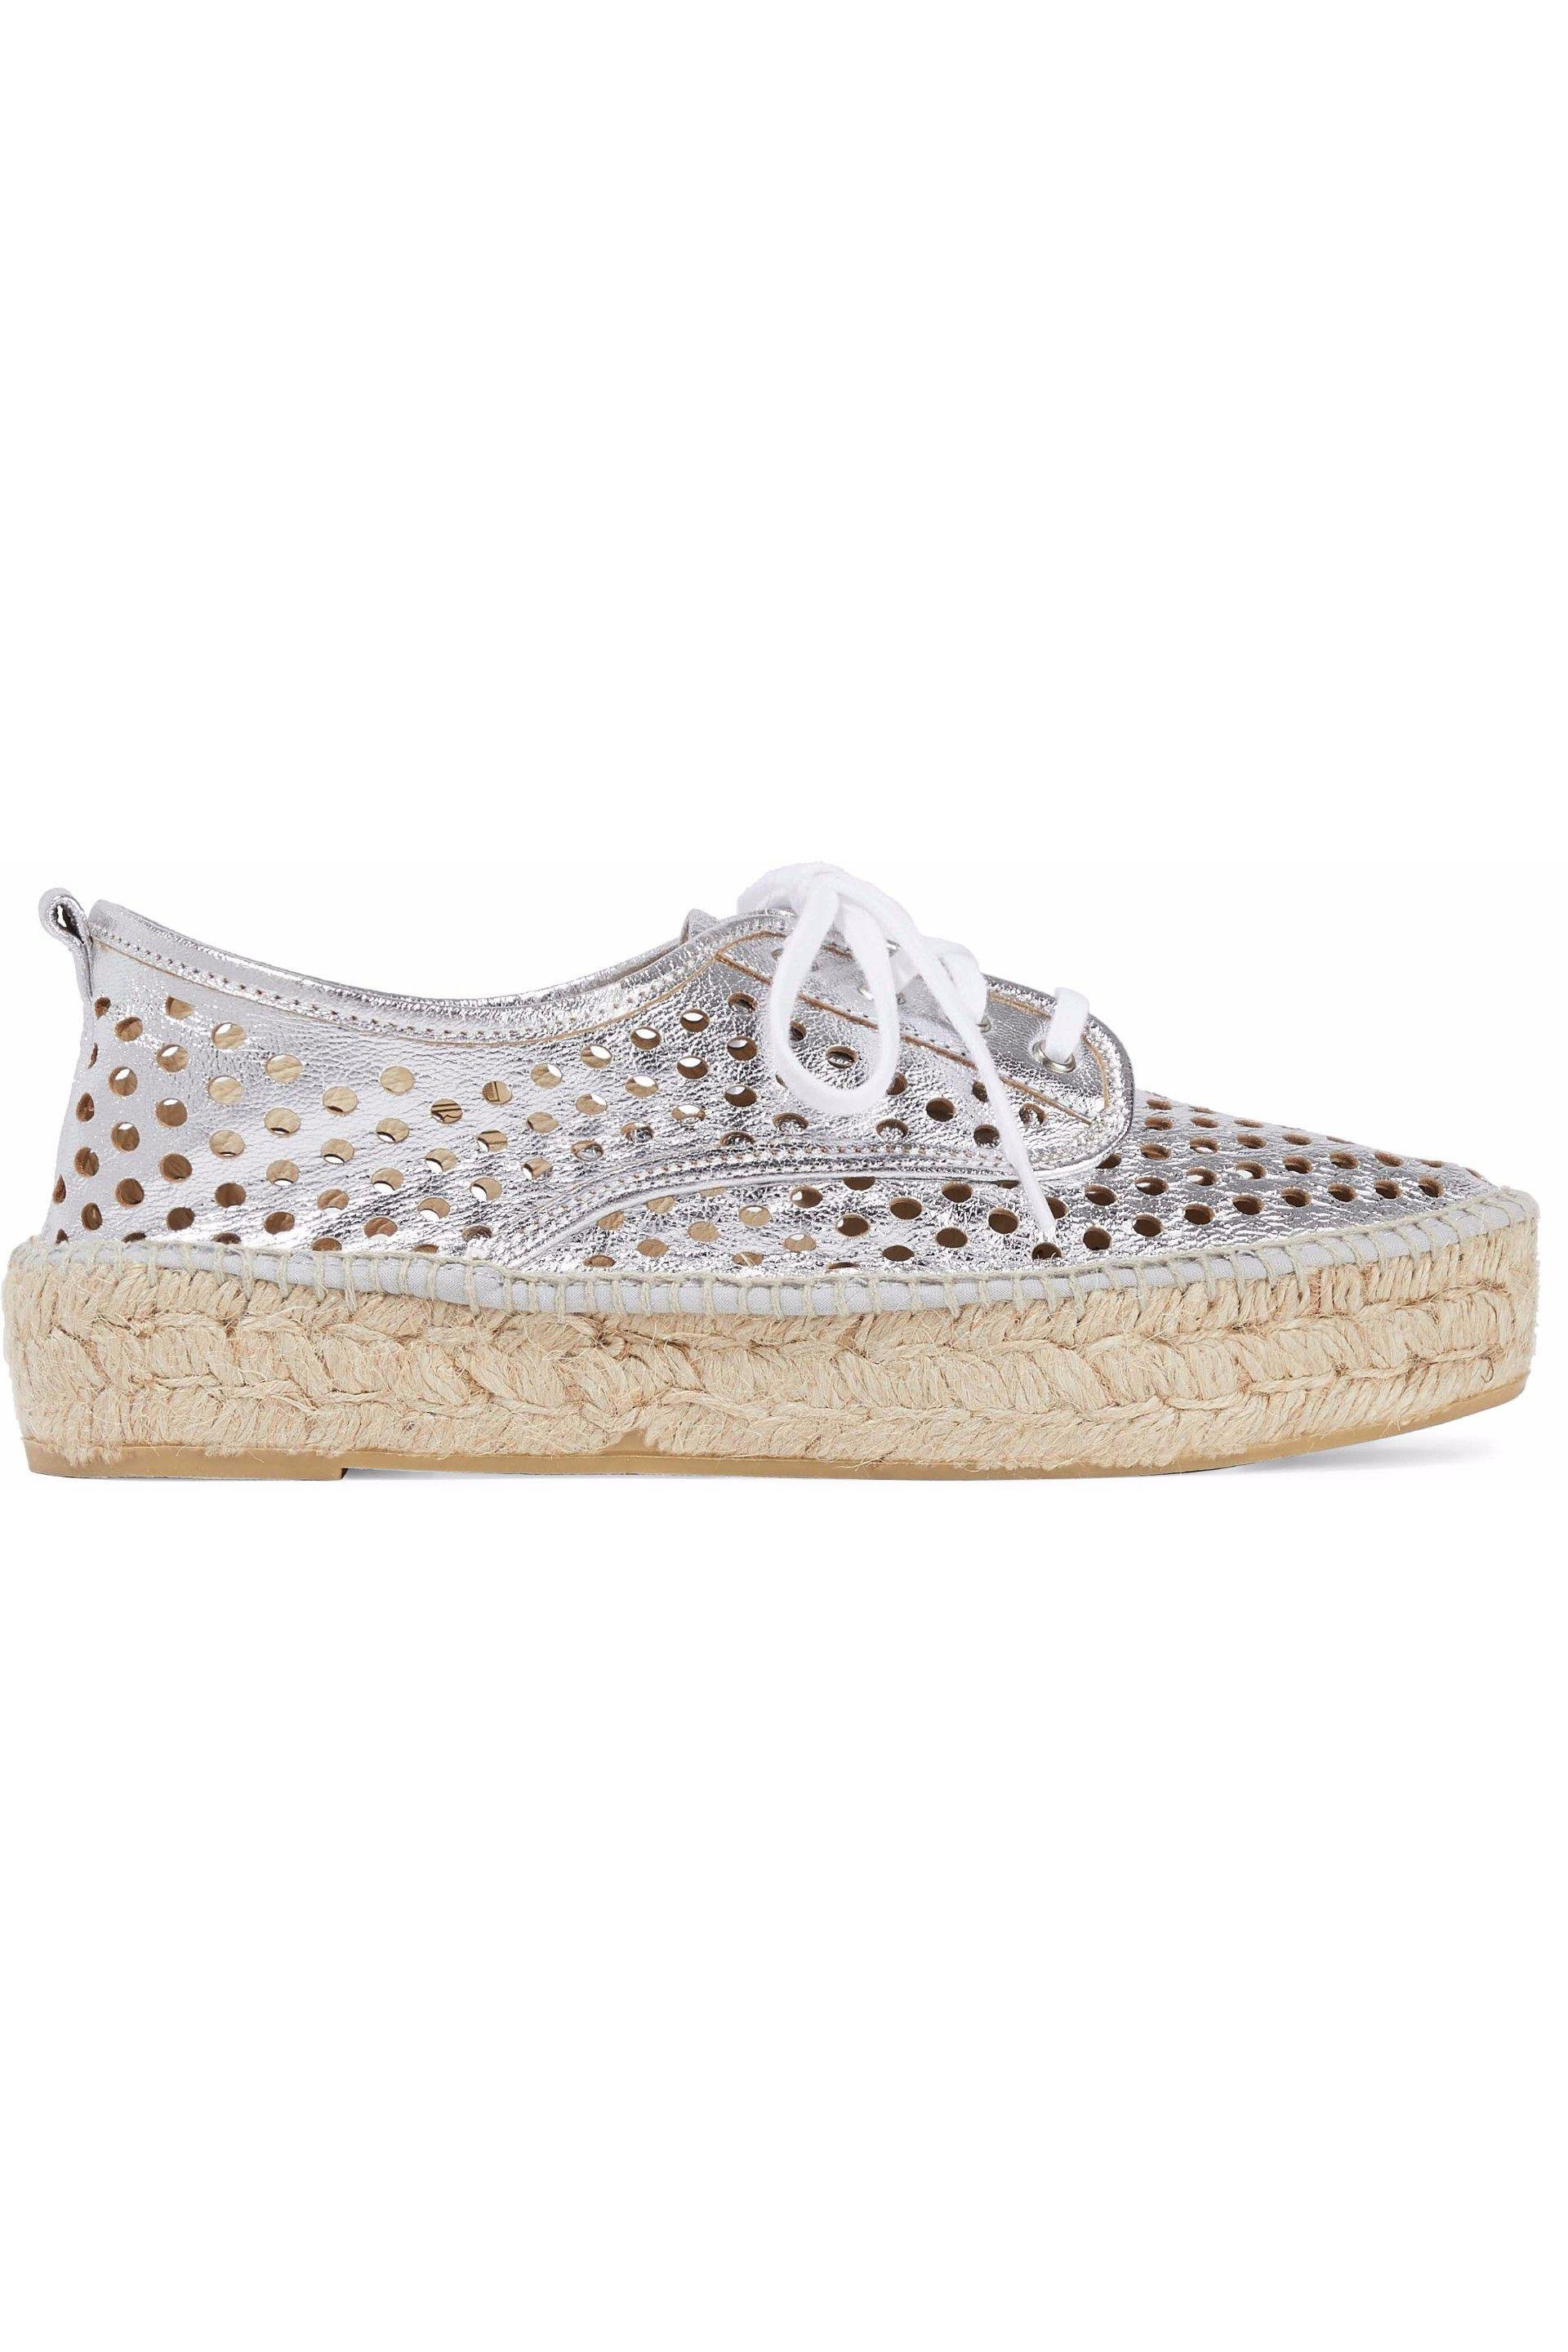 Loeffler Randall Laser Cut Low-Top Sneakers clearance clearance store prices cheap price newest cheap online 8Xc3MtL